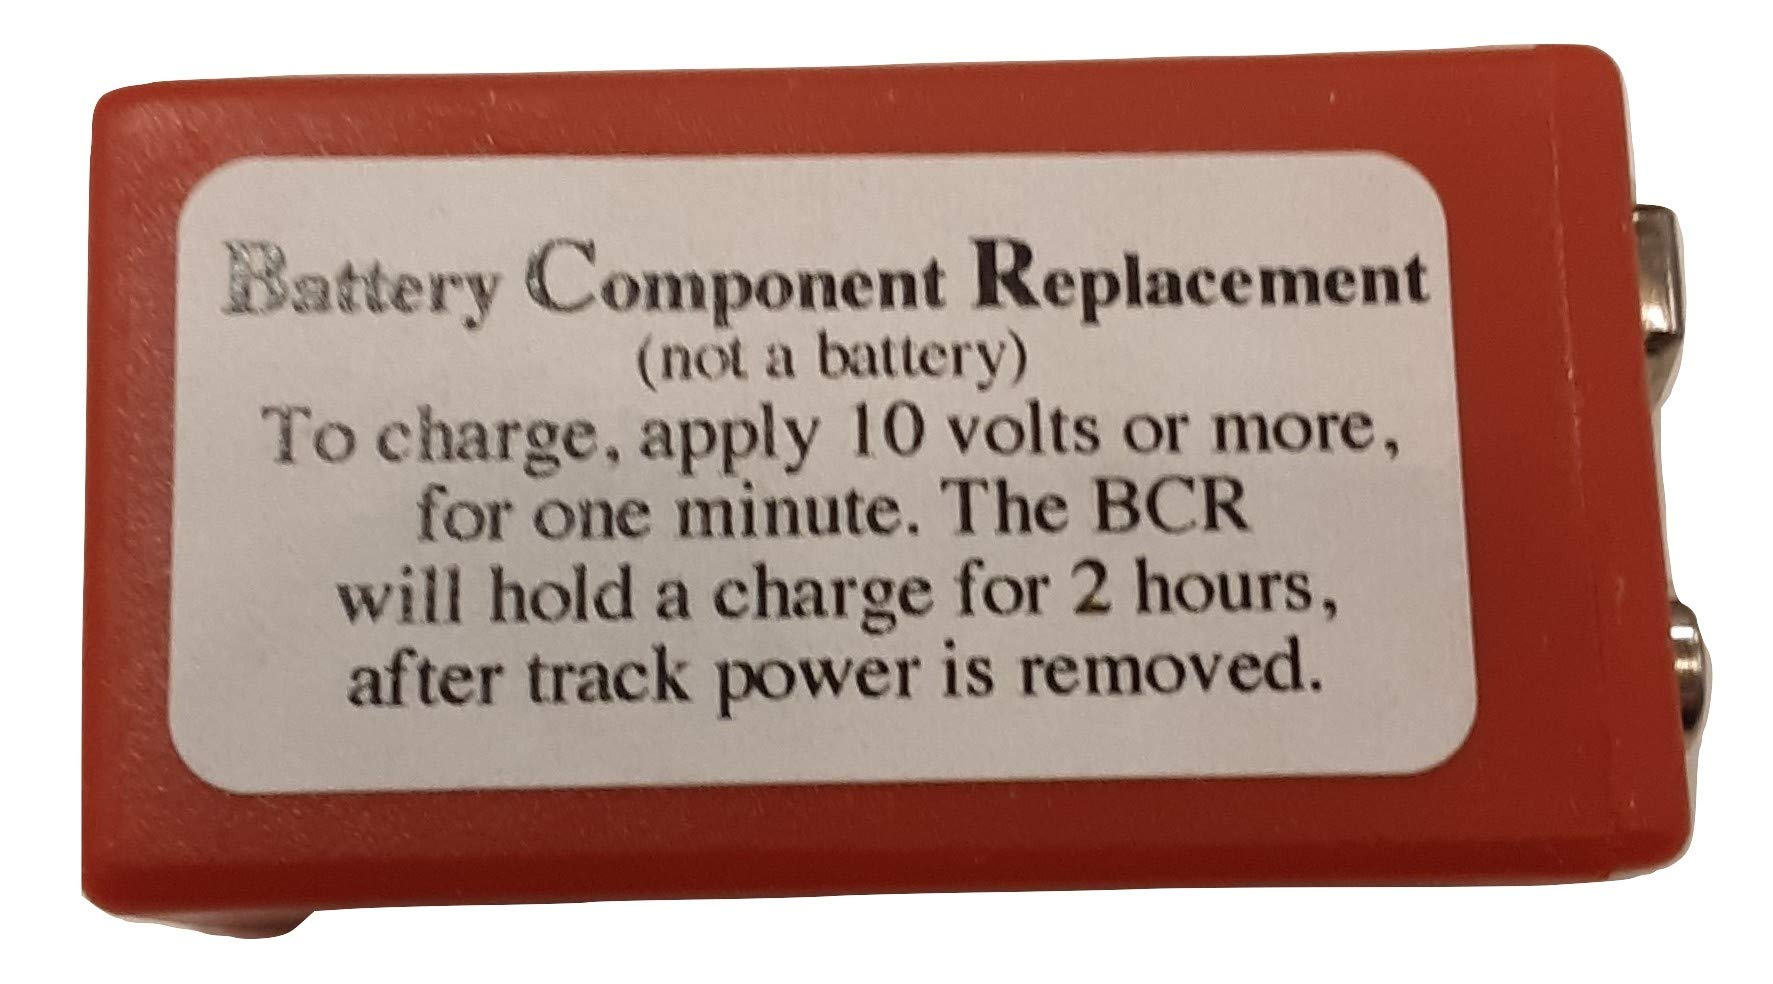 MTH BCR BATTERY COMPONENT REPLACEMENT FOR PS1 PS2 ENGINES W 9 VOLT BATTERIES